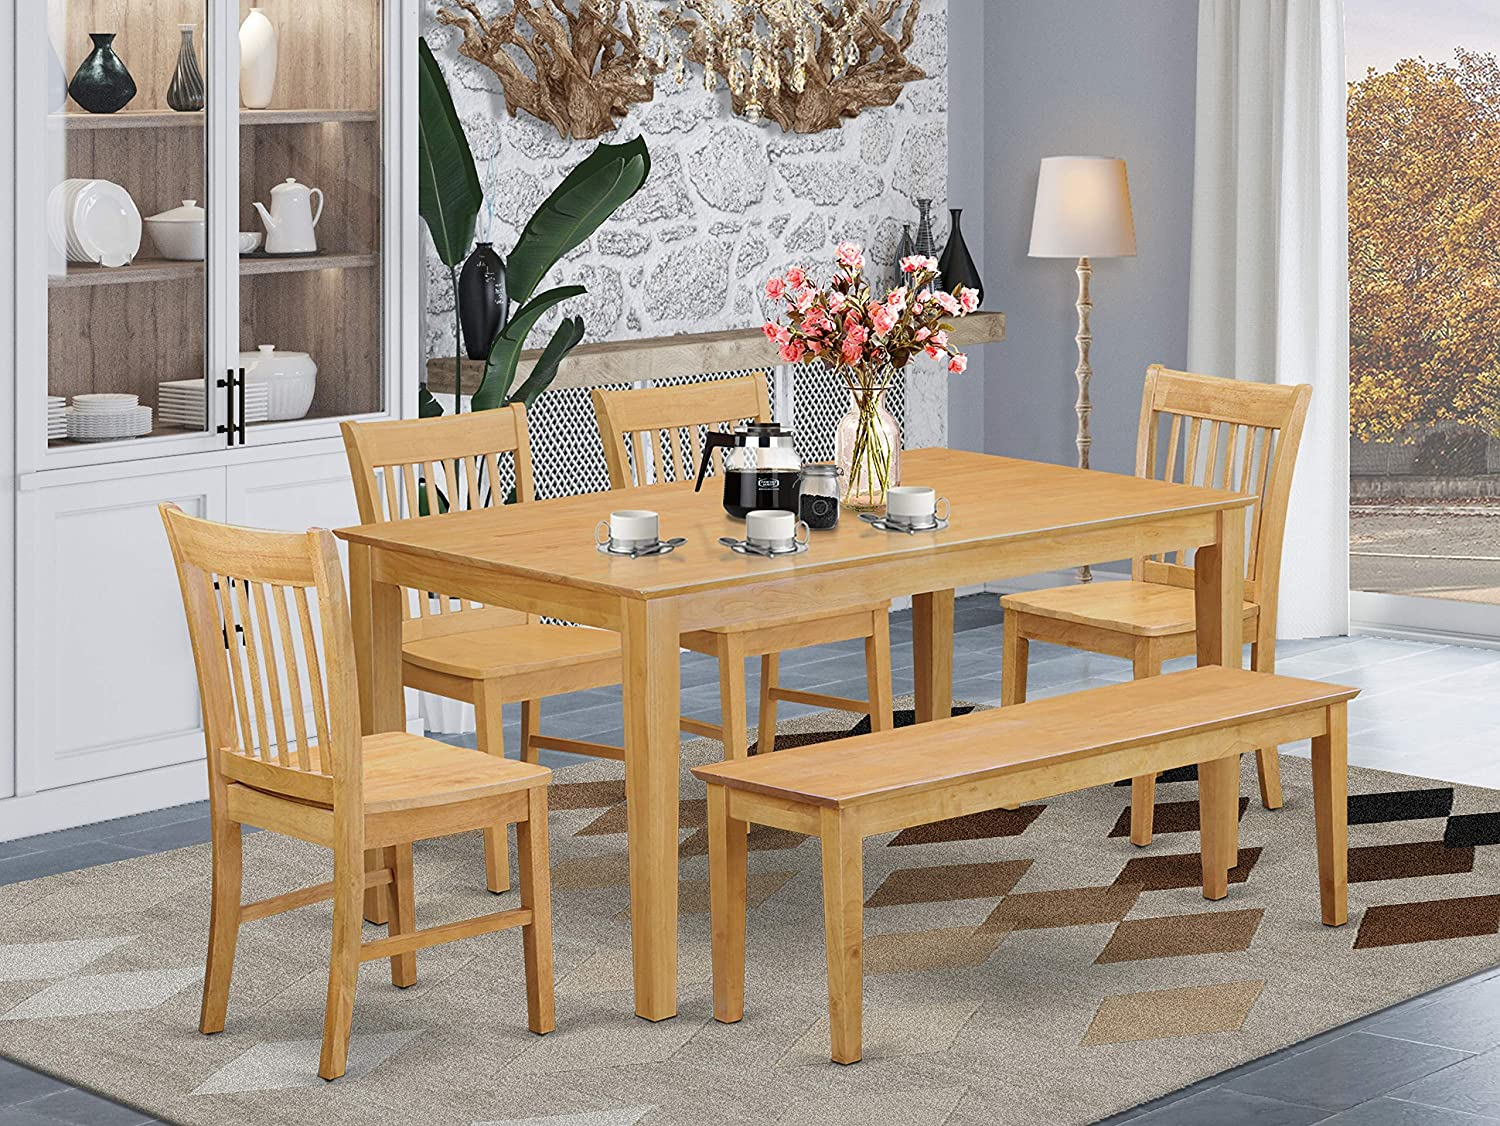 East West Furniture Rectangular Dining Table Set 9 Pc   Wooden Modern  Dining Chairs Seat   Oak Finish Dining Room Table and Bench